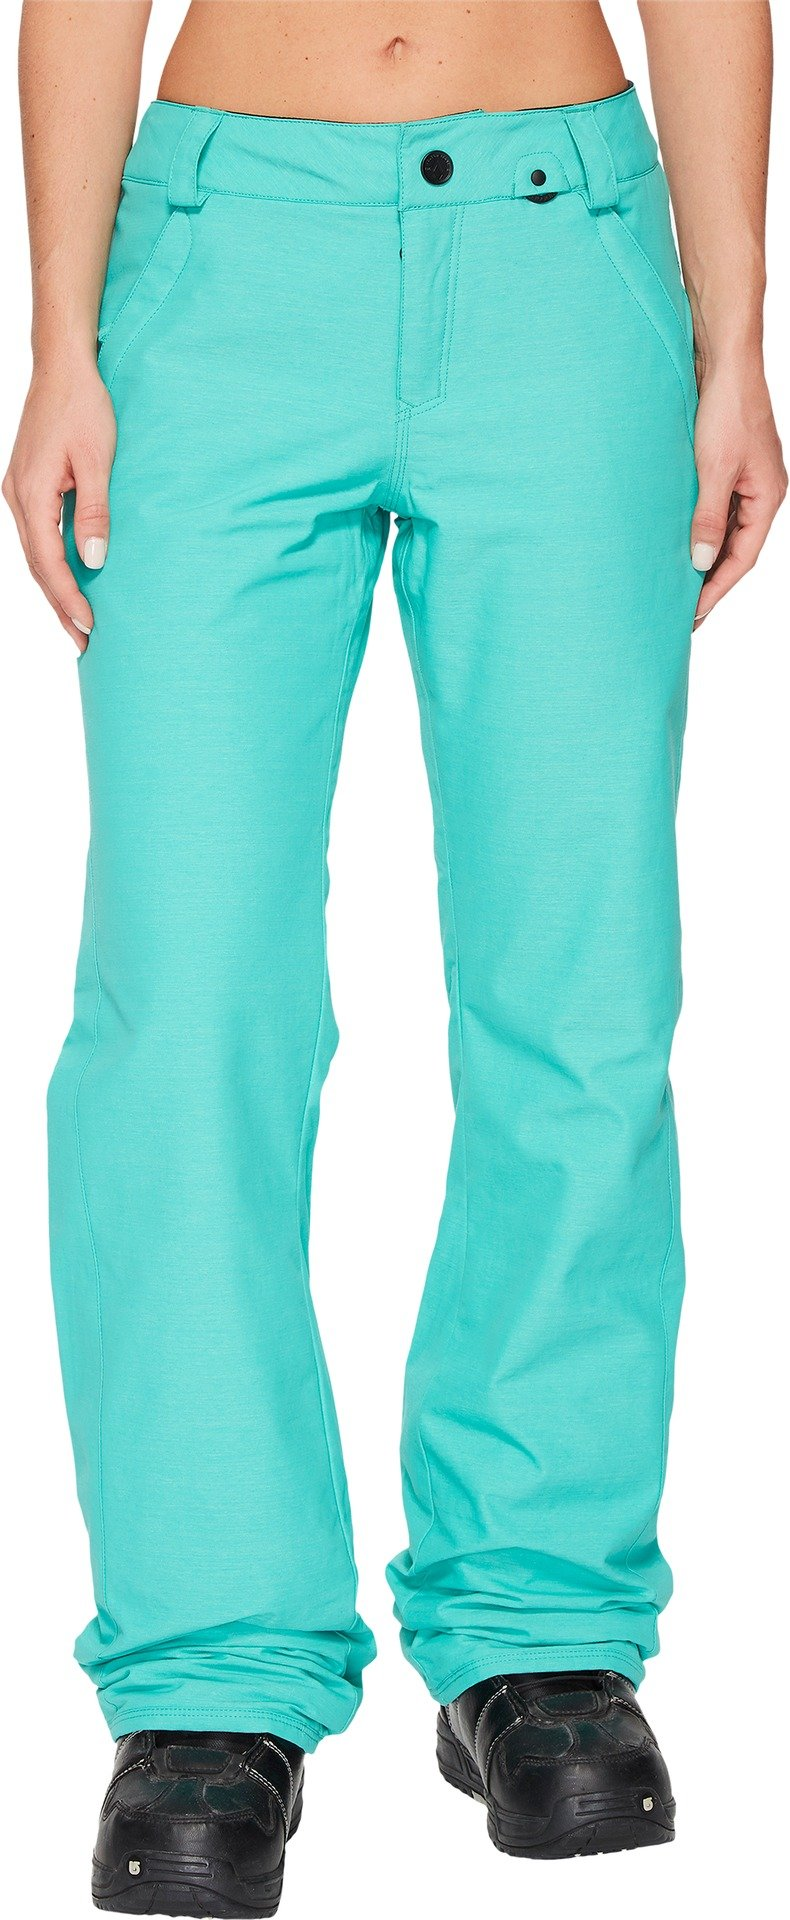 Volcom Snow Women's Frochickie Insulated Pants Teal Green Large by Volcom